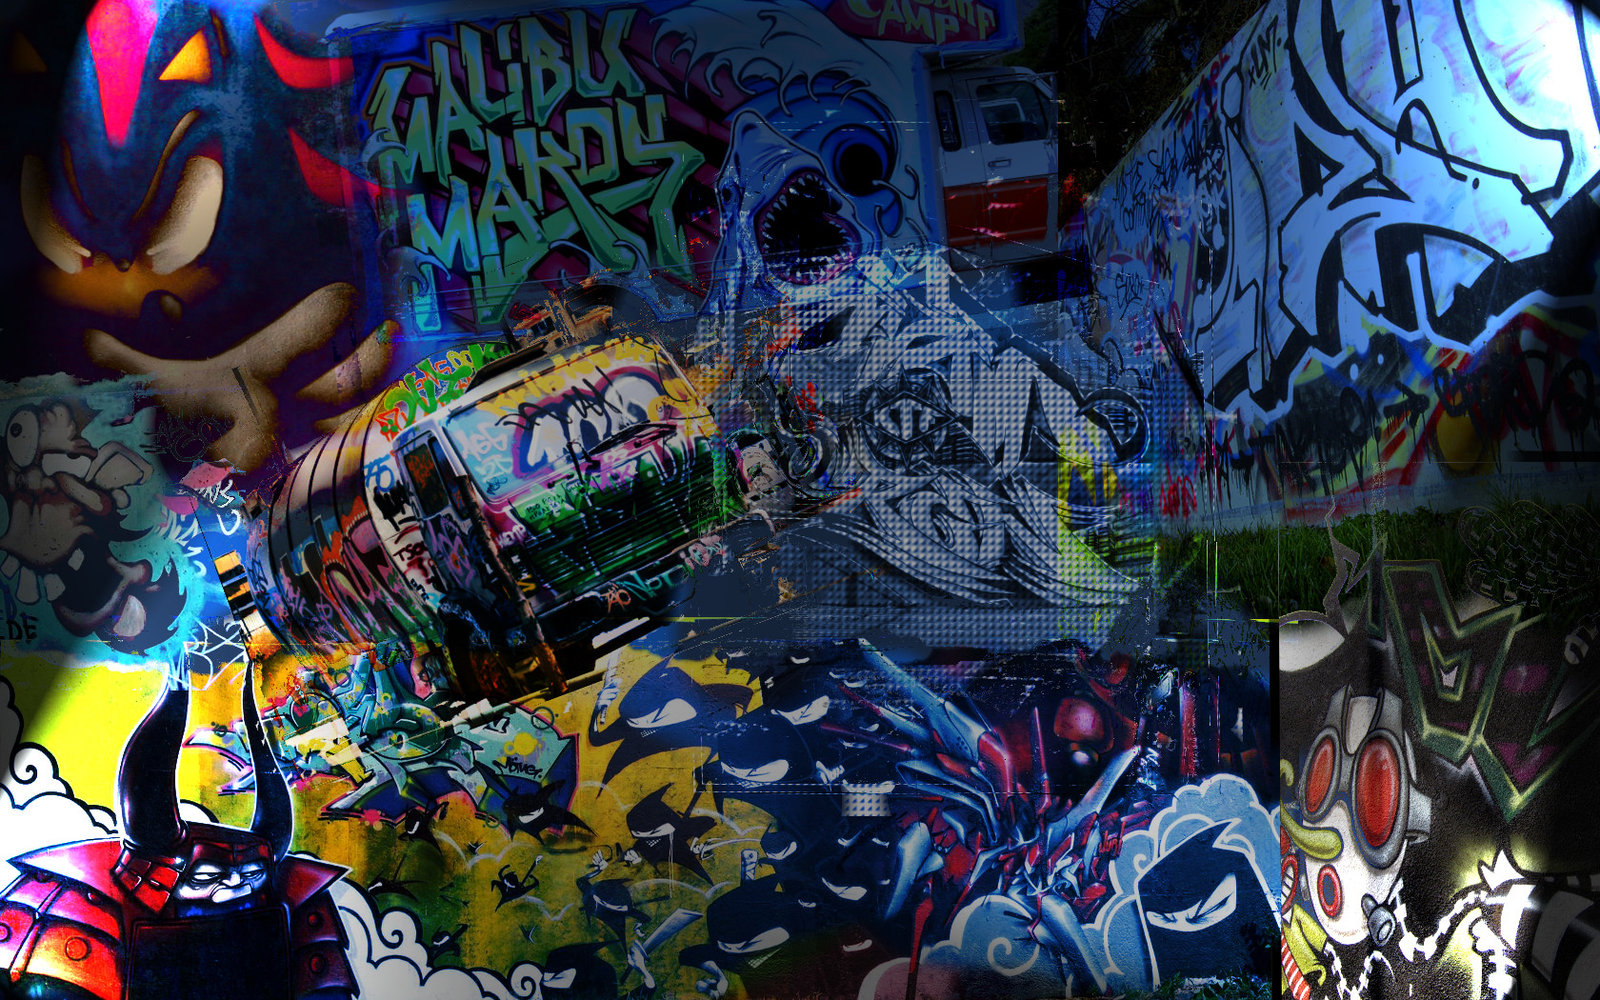 download Cool Graffiti Wallpaper [1600x1000] for your Desktop 1600x1000